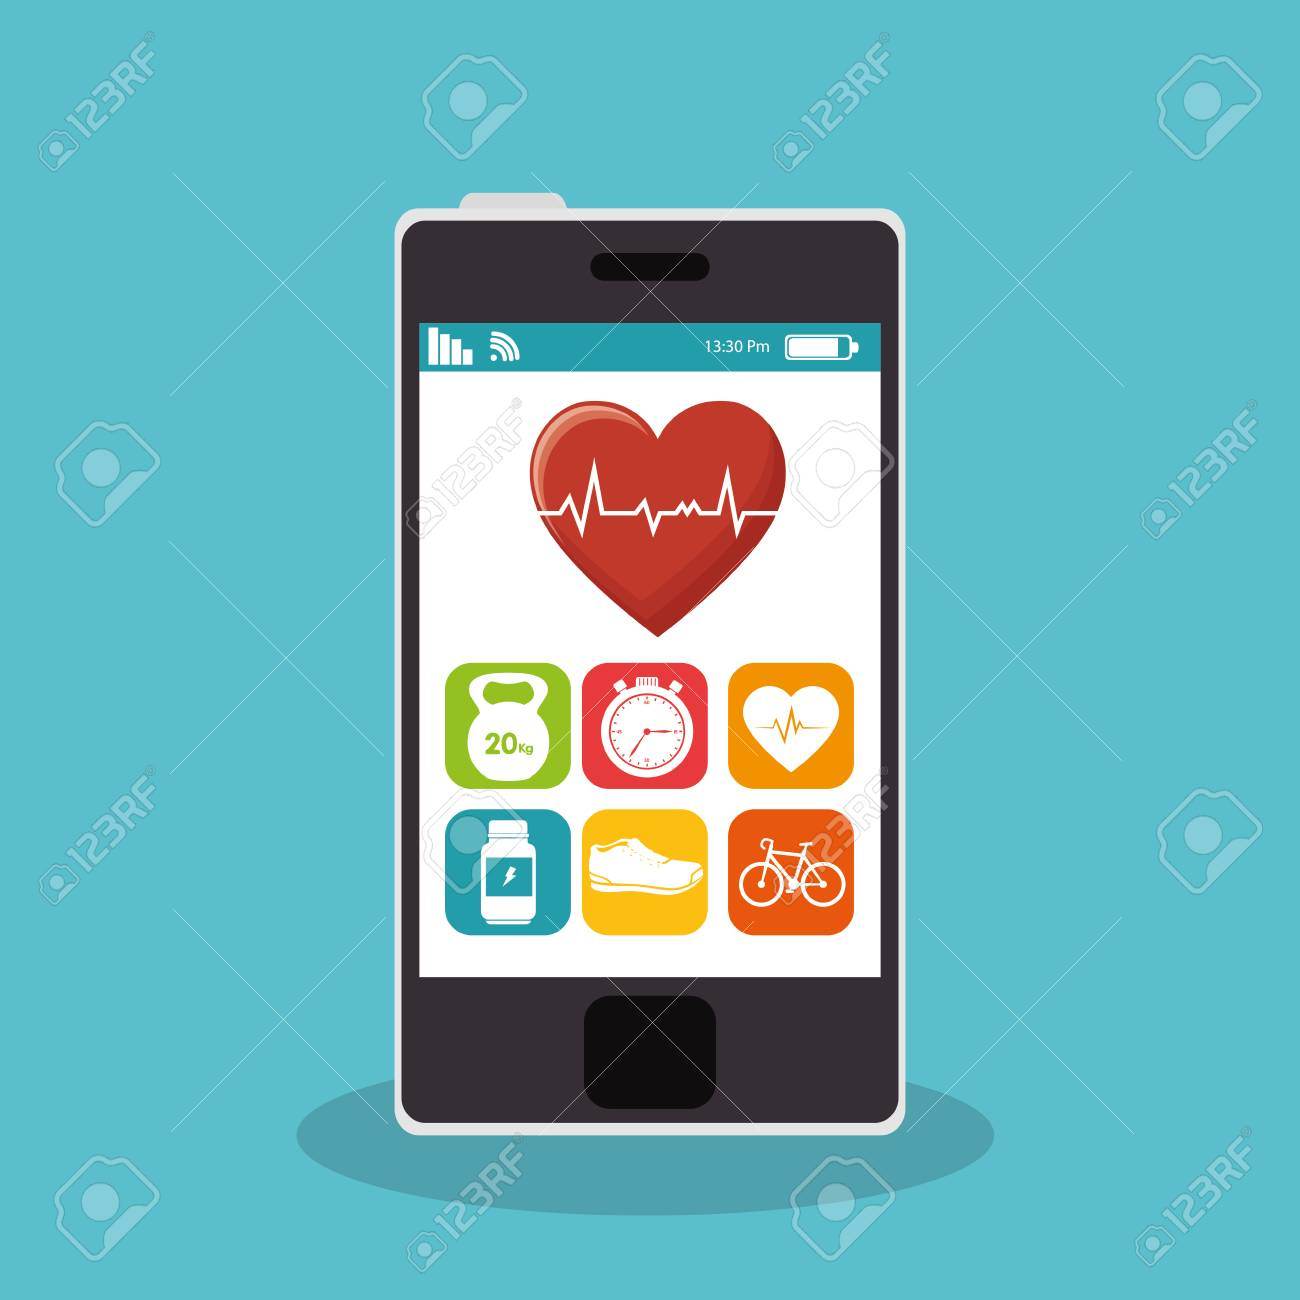 smartphone with fitness app vector illustration design